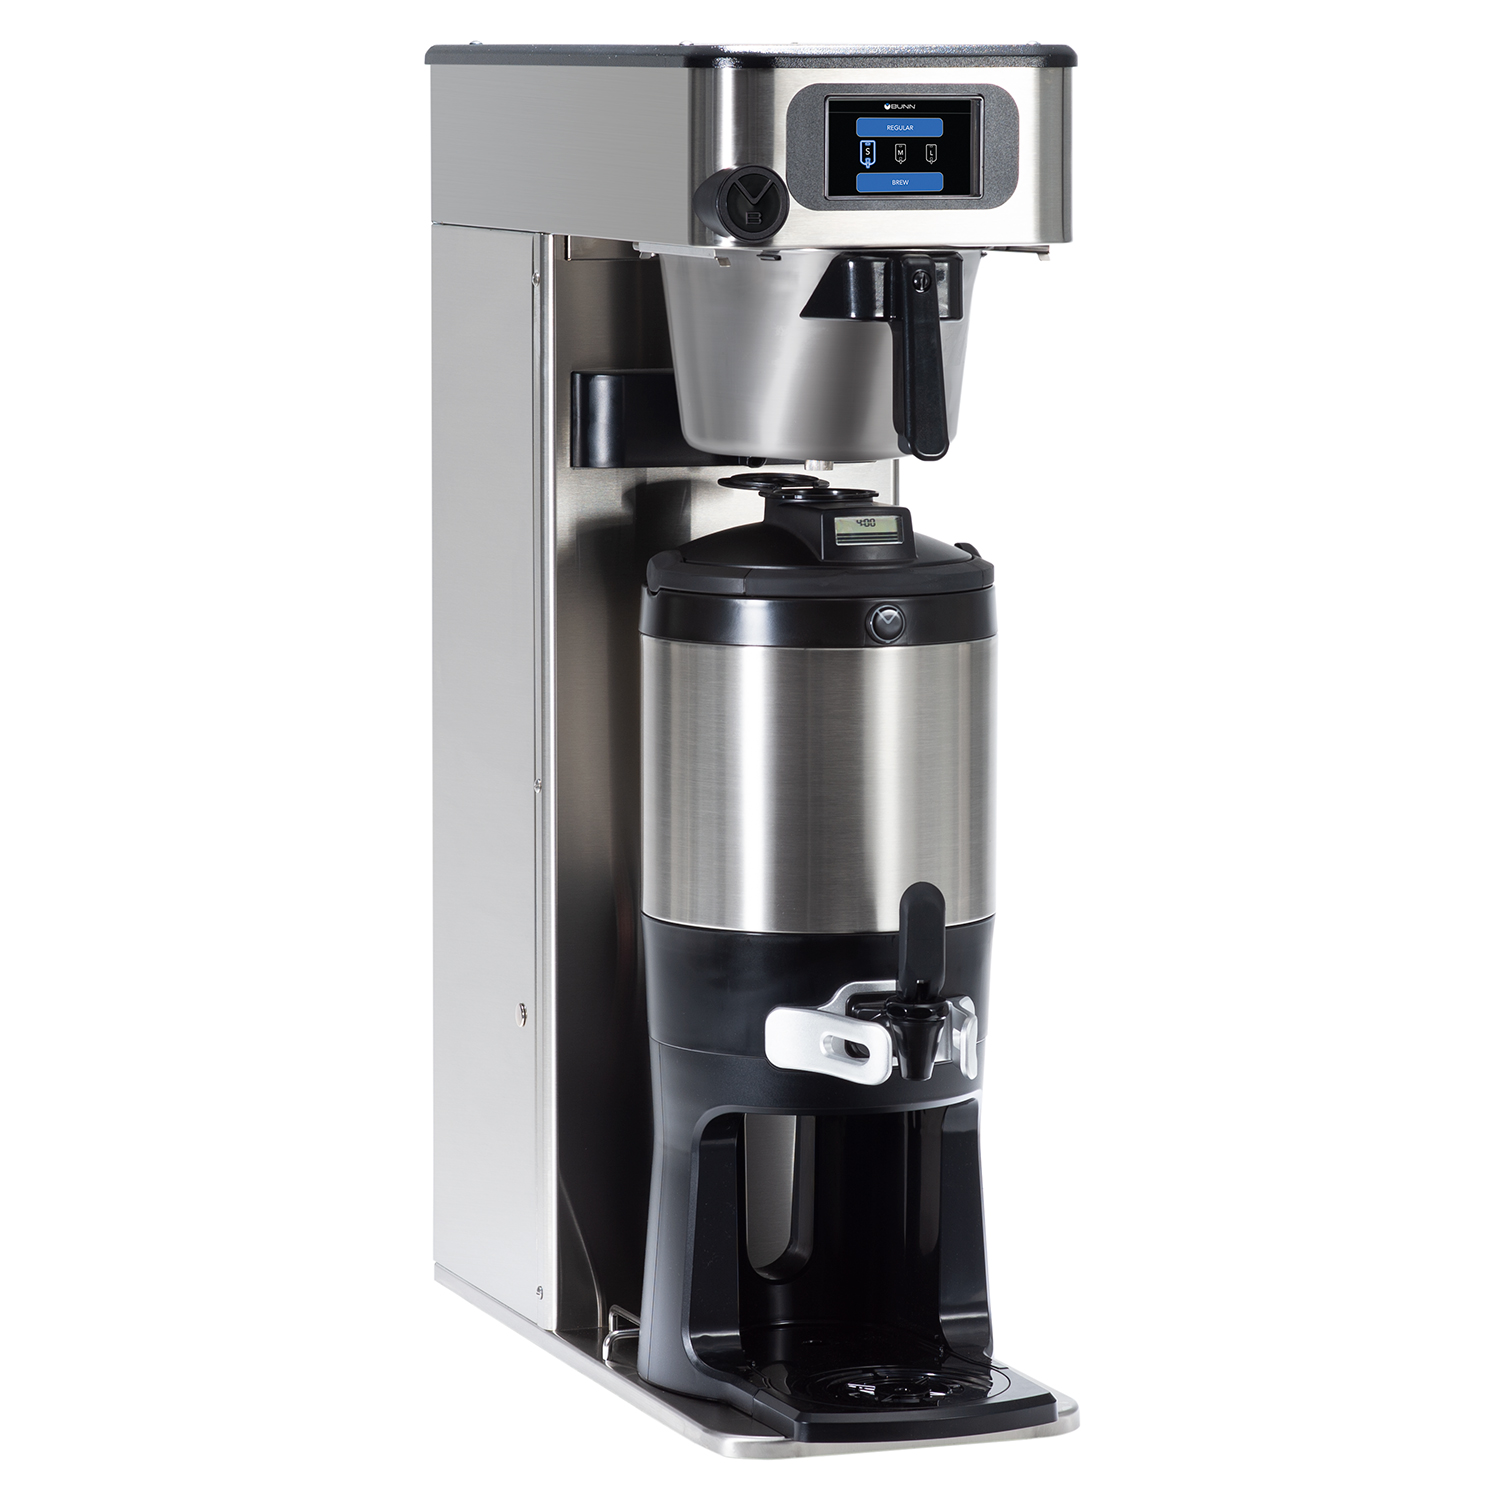 BUNN 54000.0100 coffee tea brewer